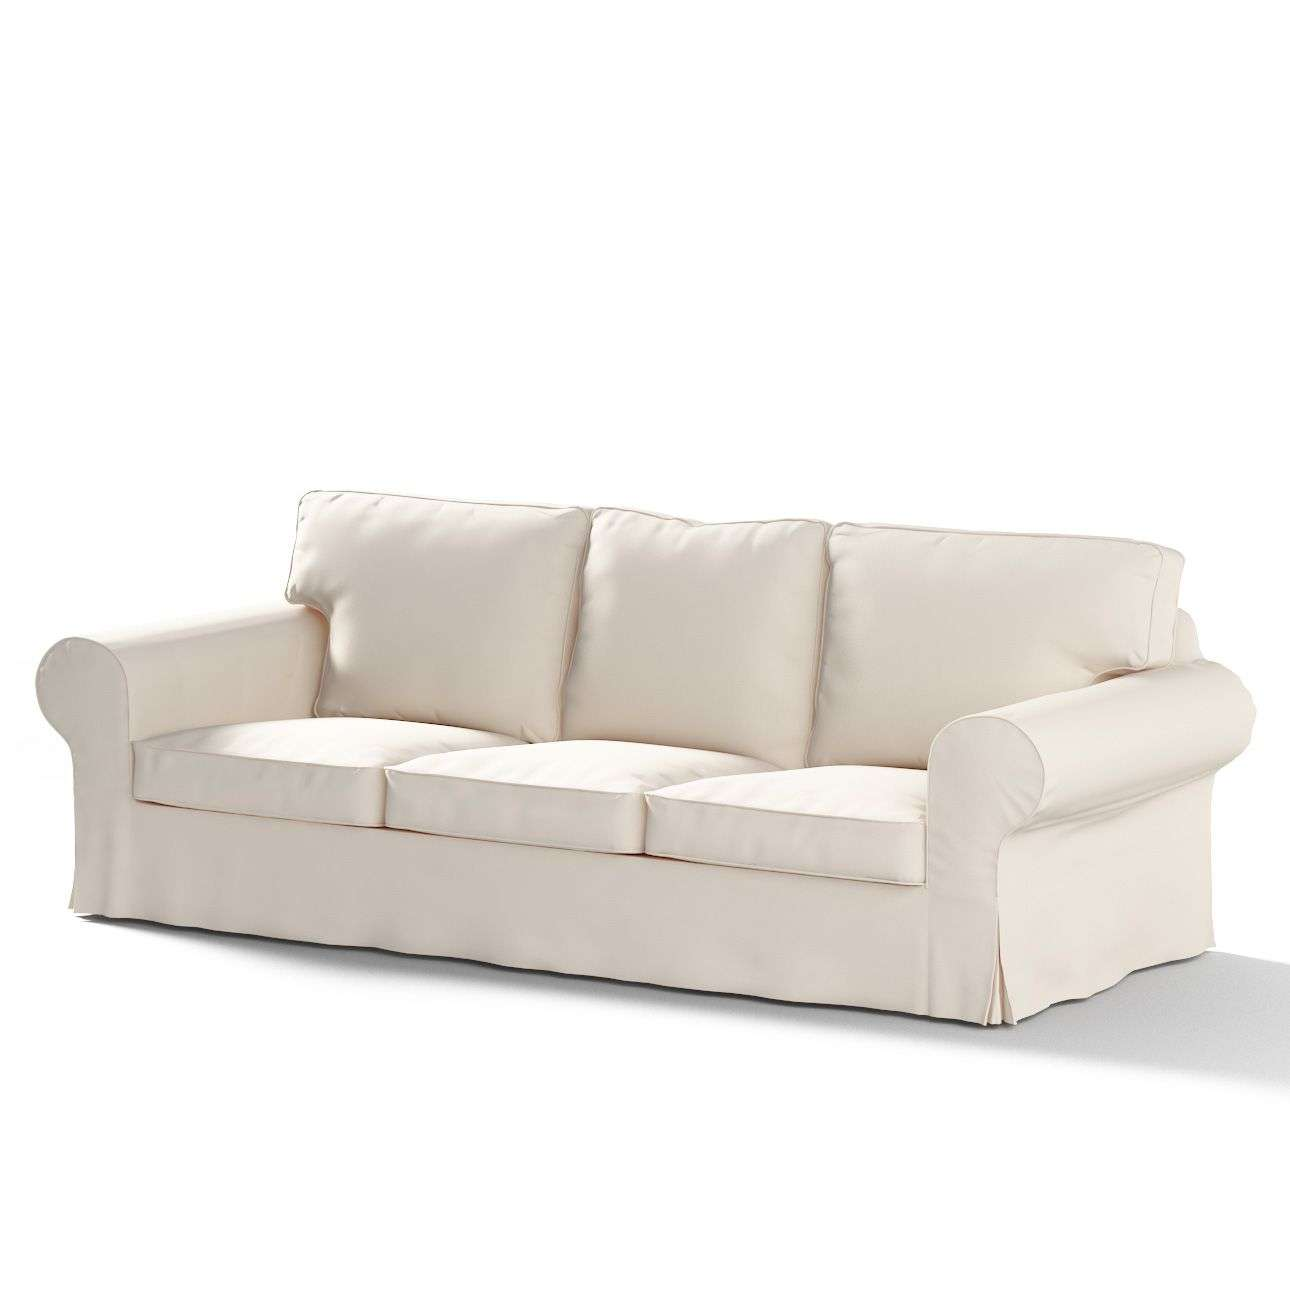 Ikea ektorp sofa and furniture covers Loveseat futon cover